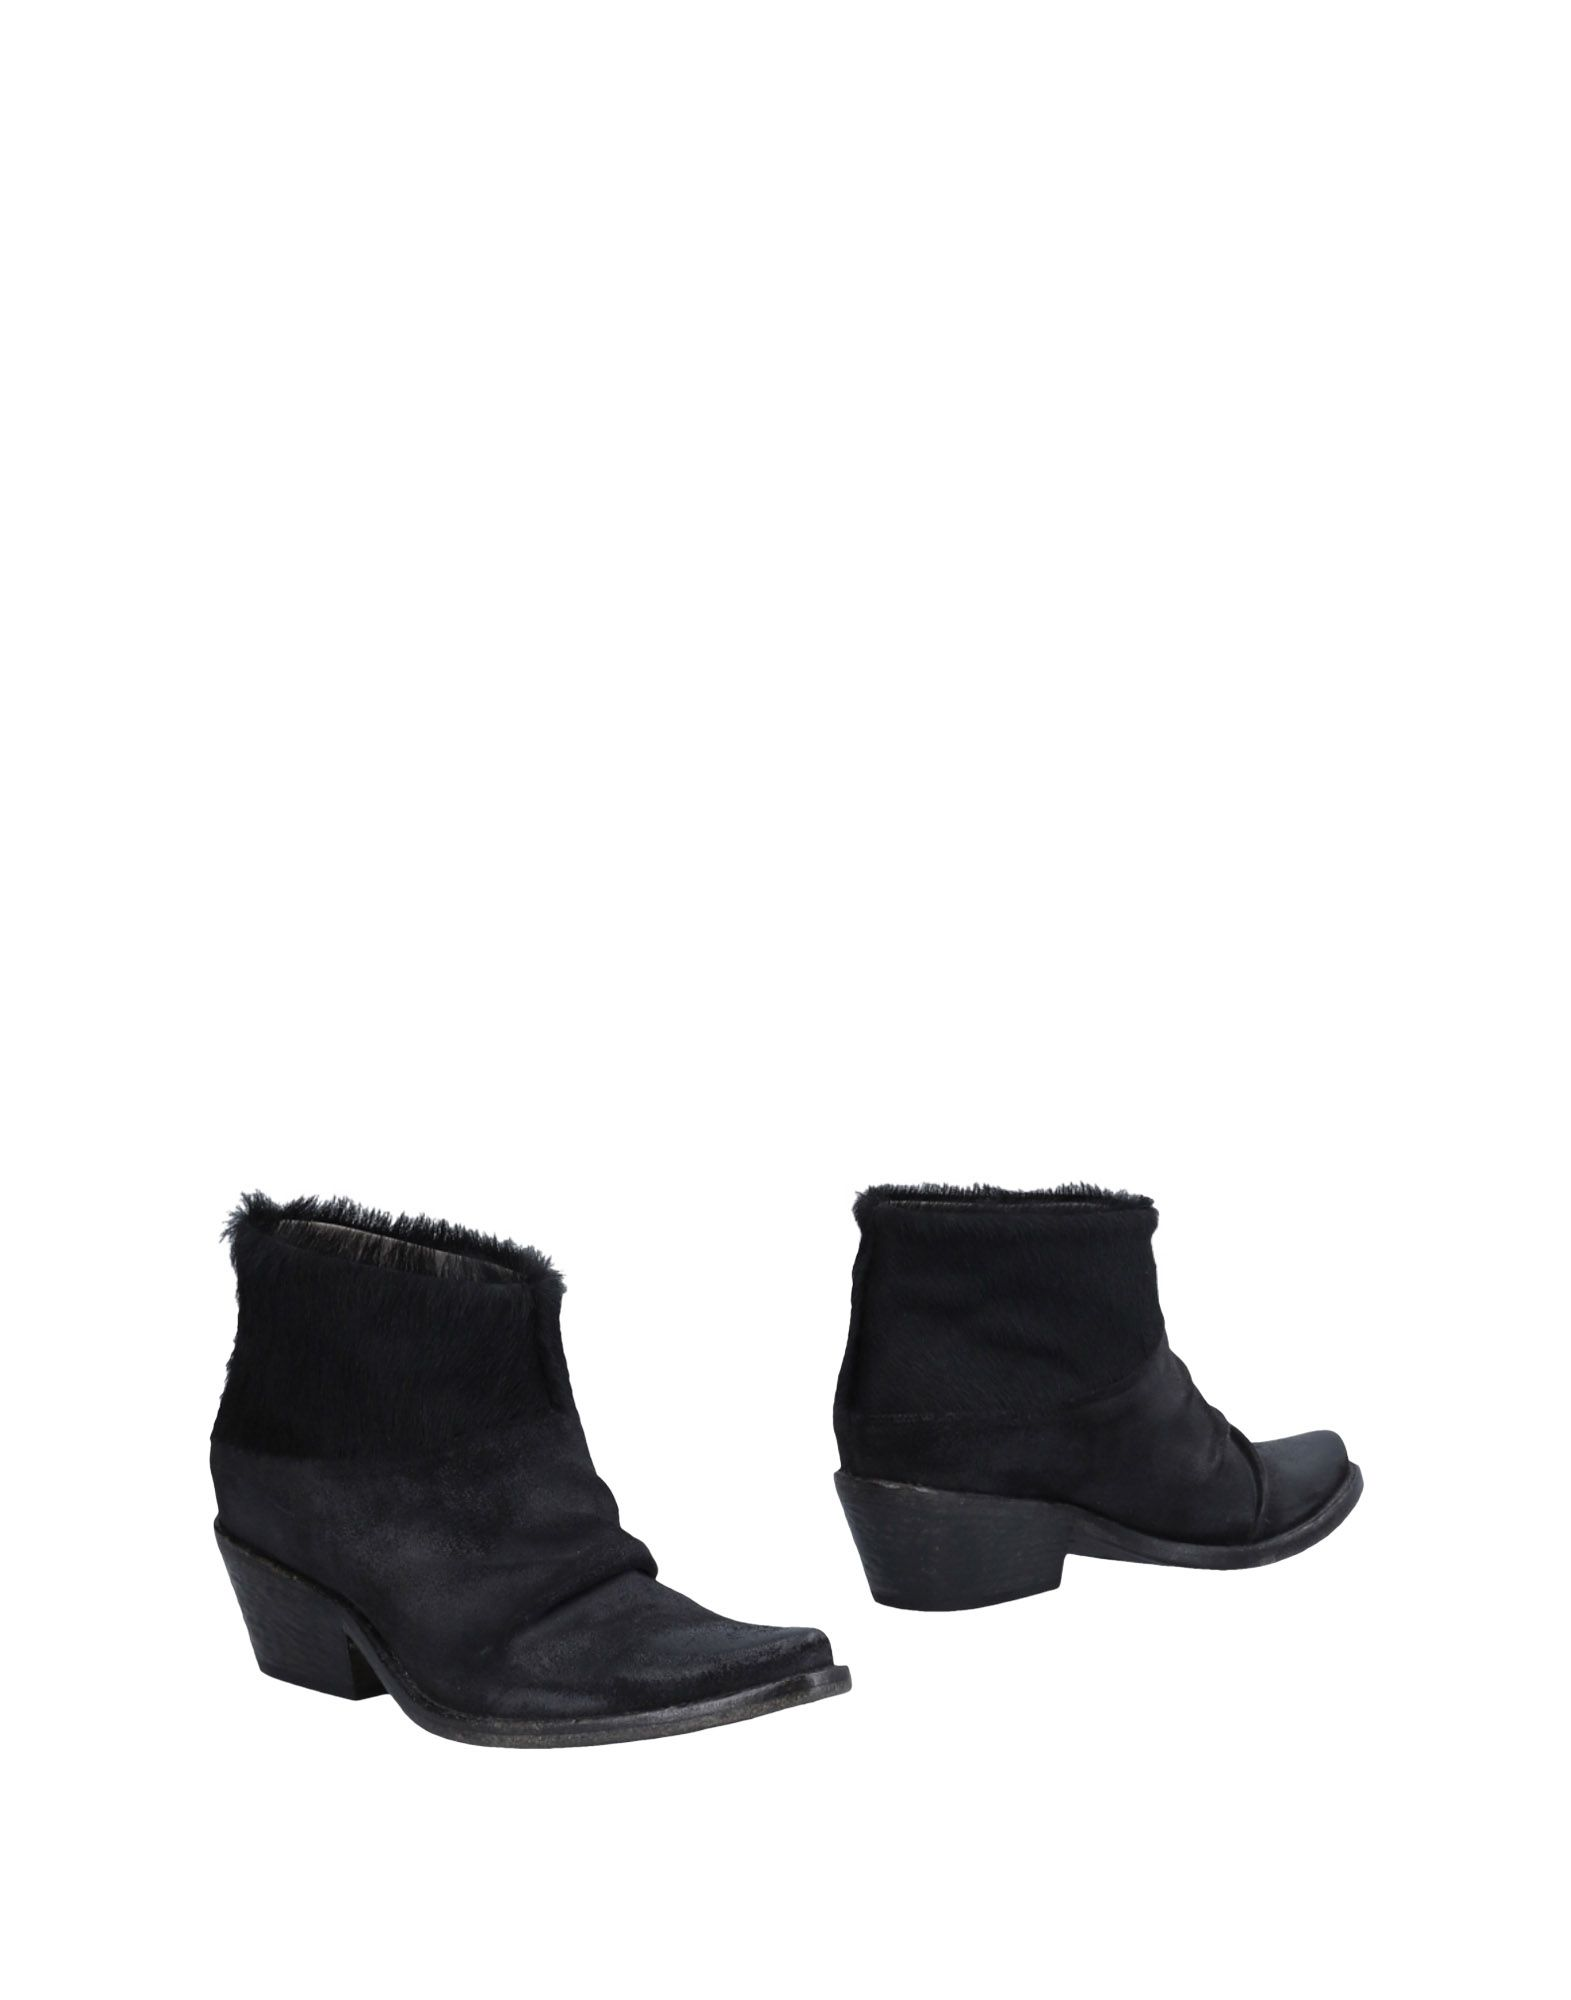 Joe Nephis Ankle Boot - Women Women Women Joe Nephis Ankle Boots online on  United Kingdom - 11489165HW 9c502a